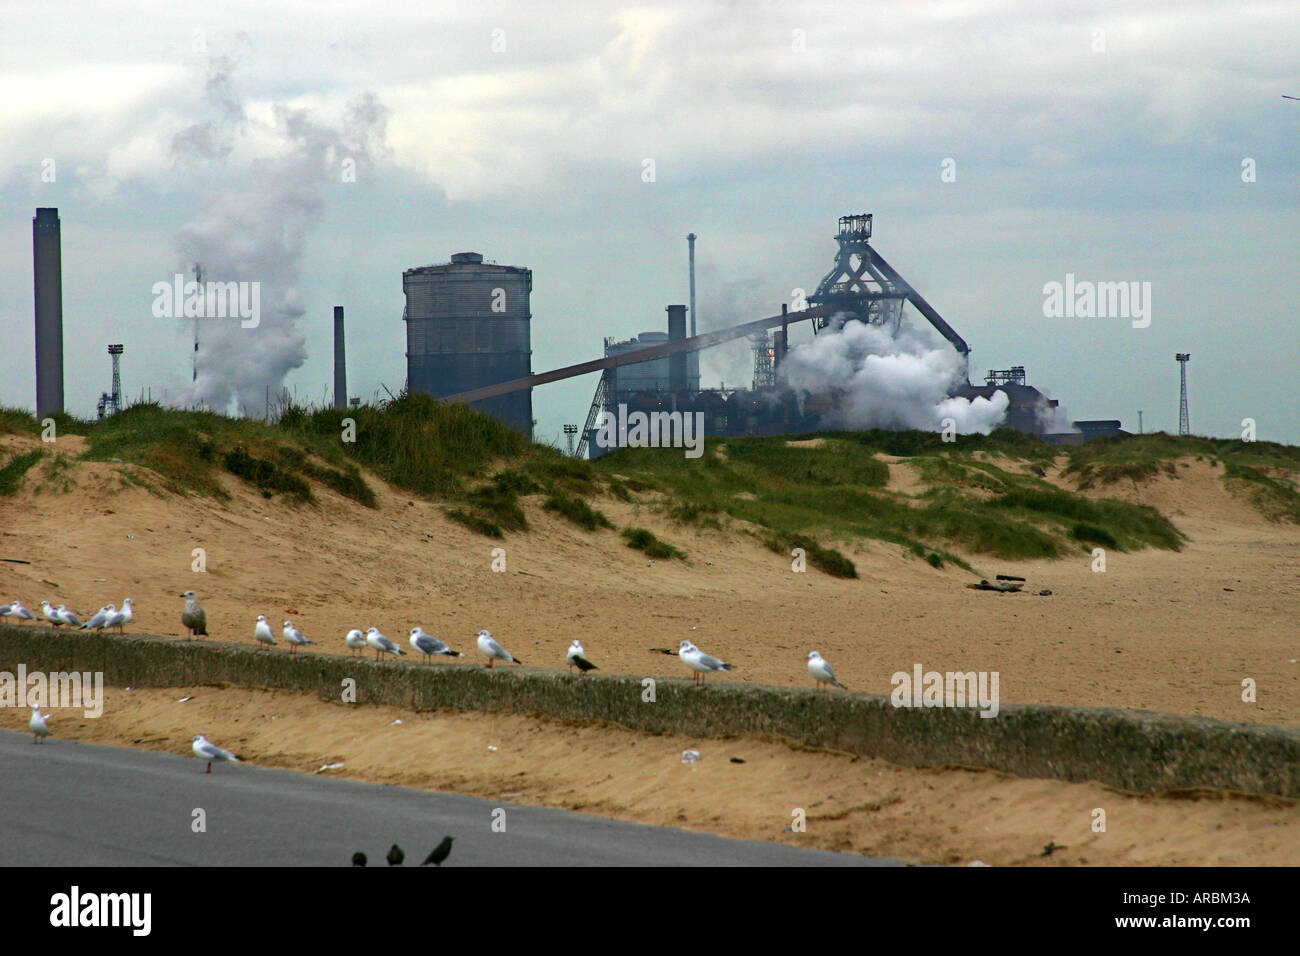 The large Corus steelworks with blast furnace at Redcar. - Stock Image